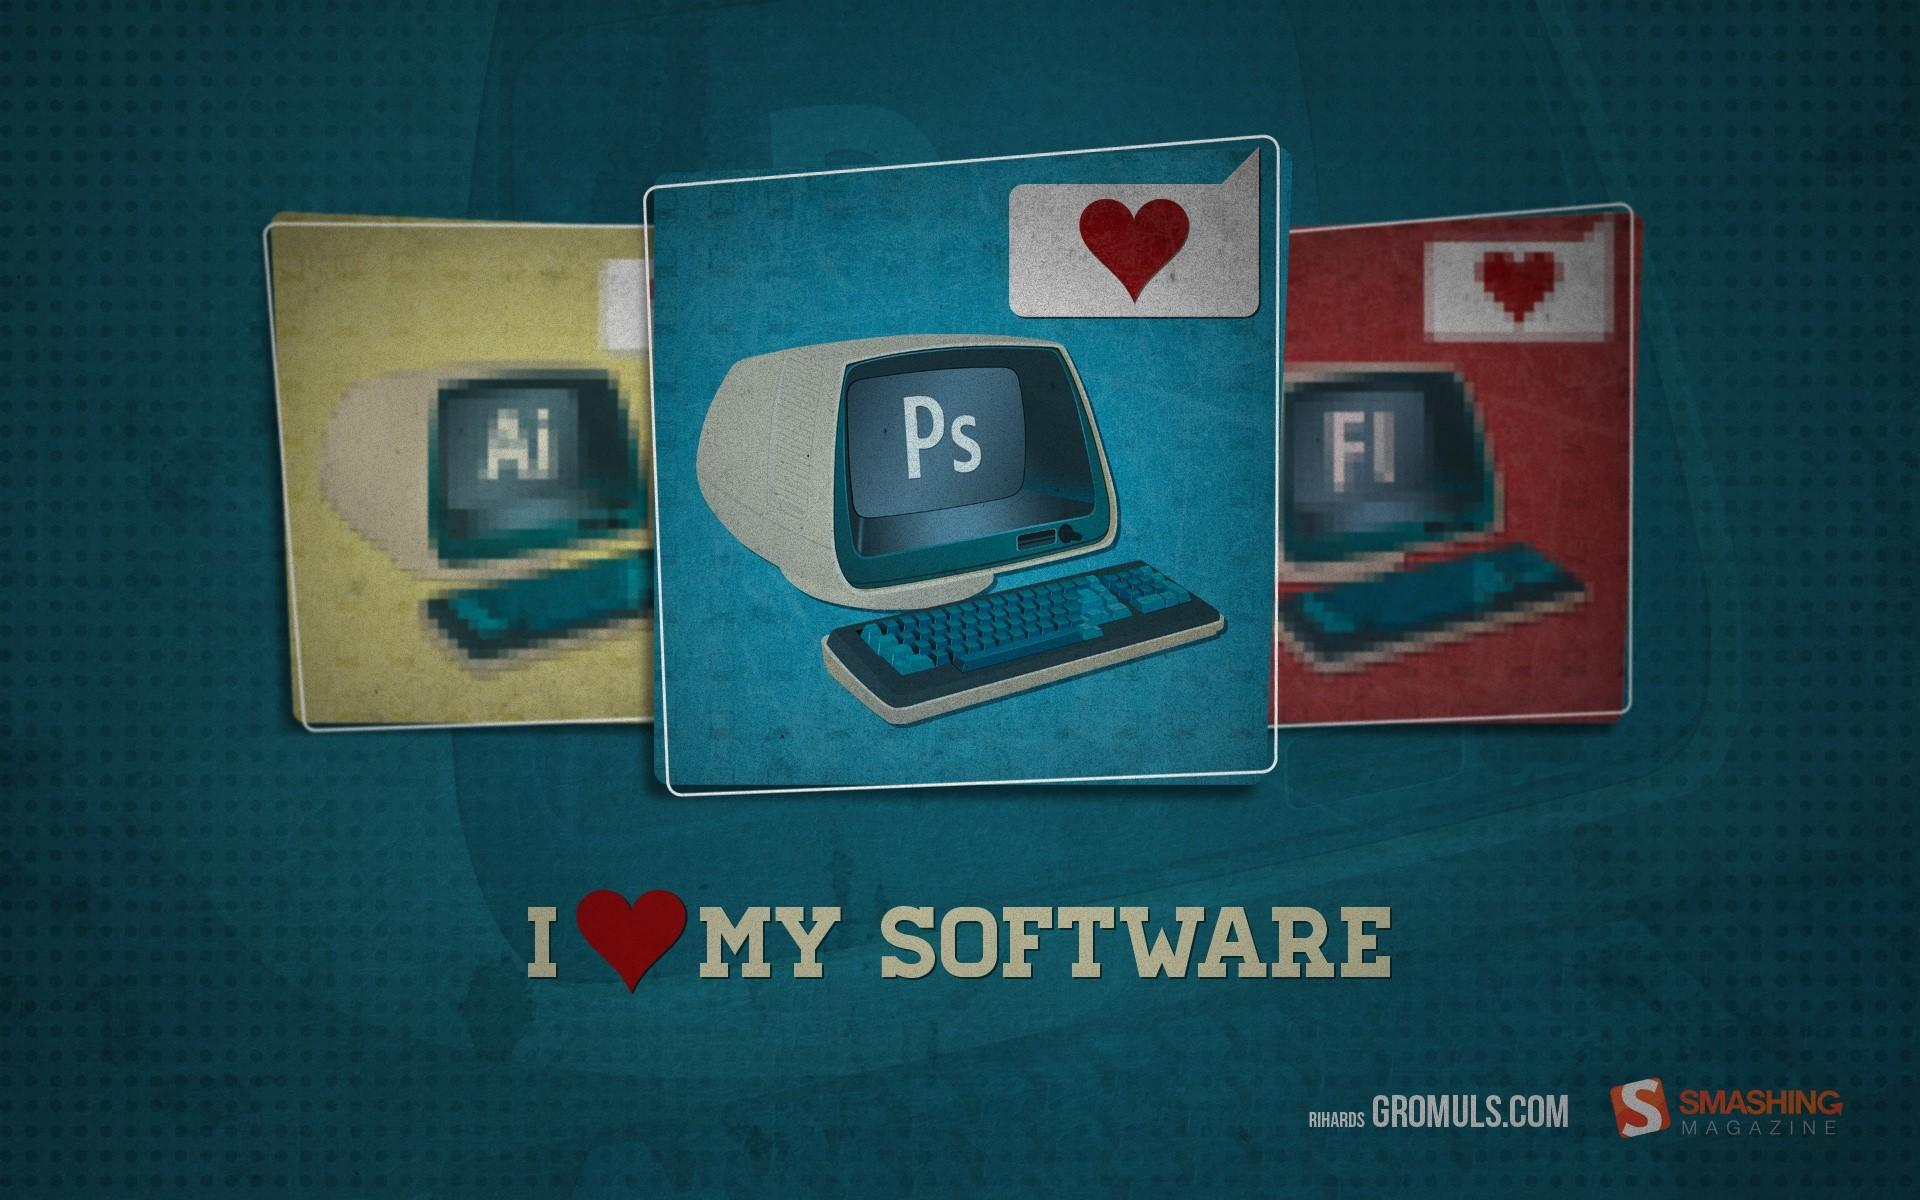 computers typography Adobe hearts Photoshop Smashing magazine blue background softwares - Wallpaper (#2212709) / Wallbase.cc